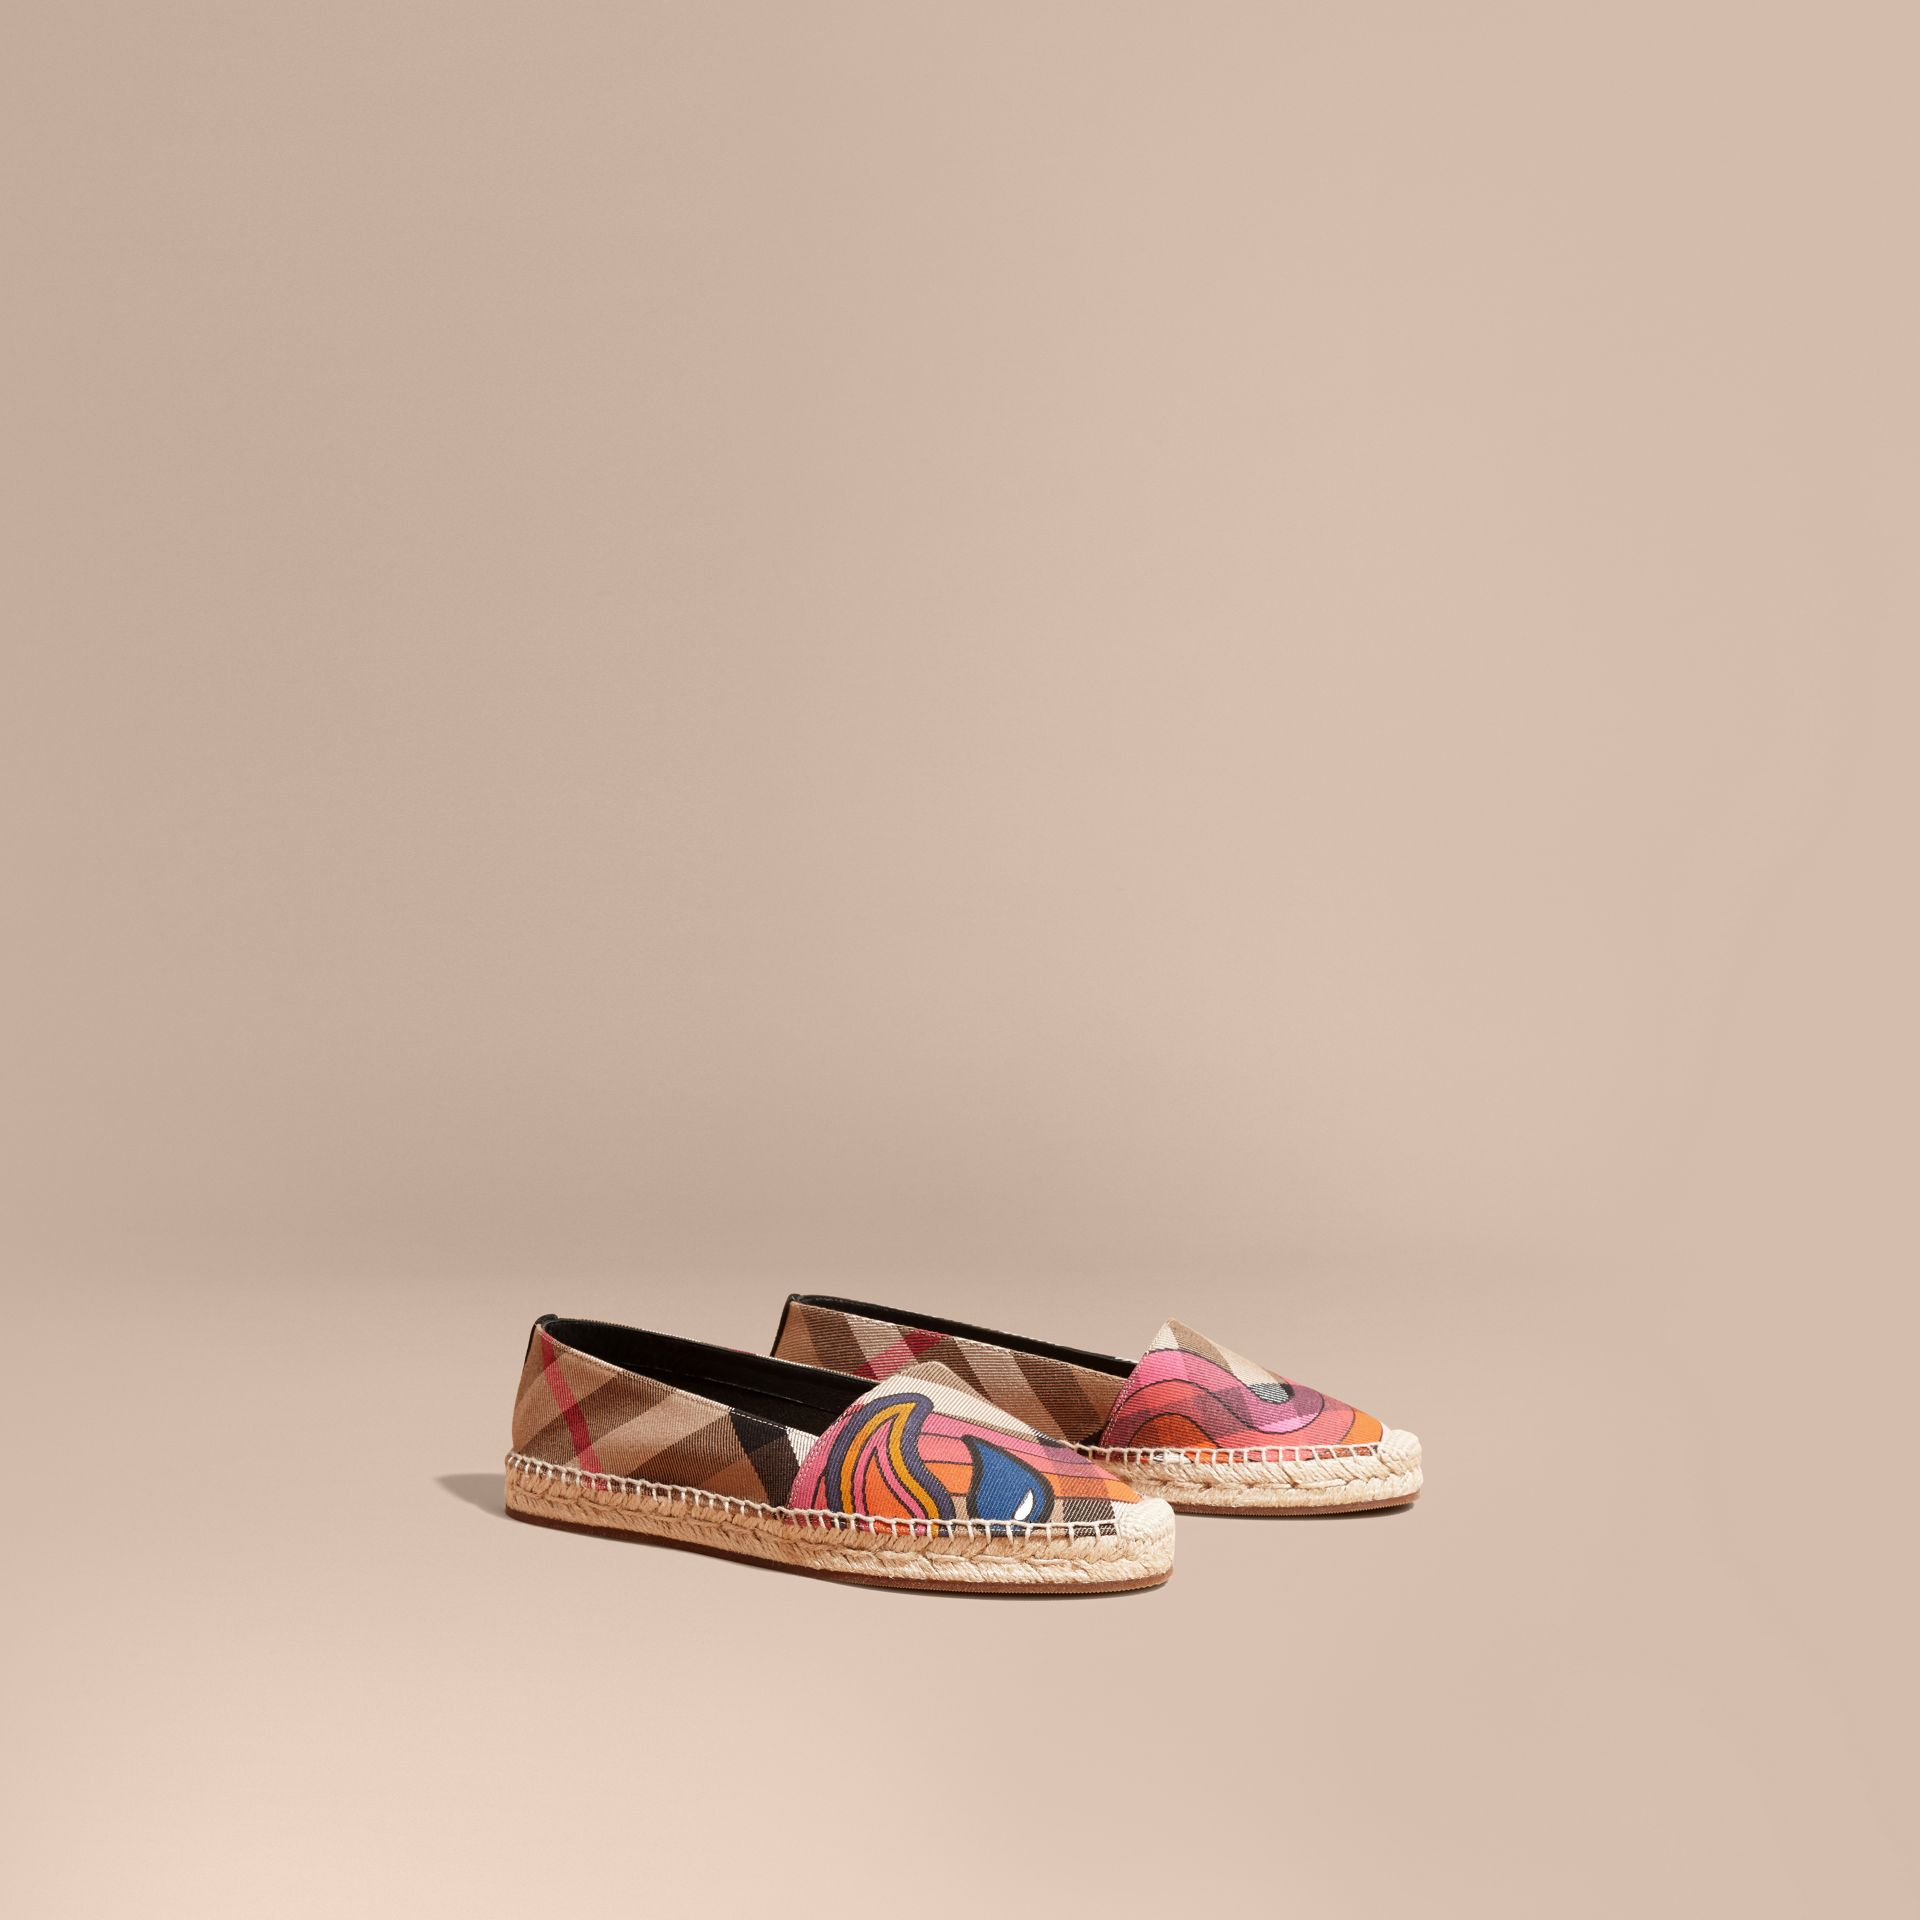 Rainbow Graphic Print Canvas and Suede Check Espadrilles - gallery image 1